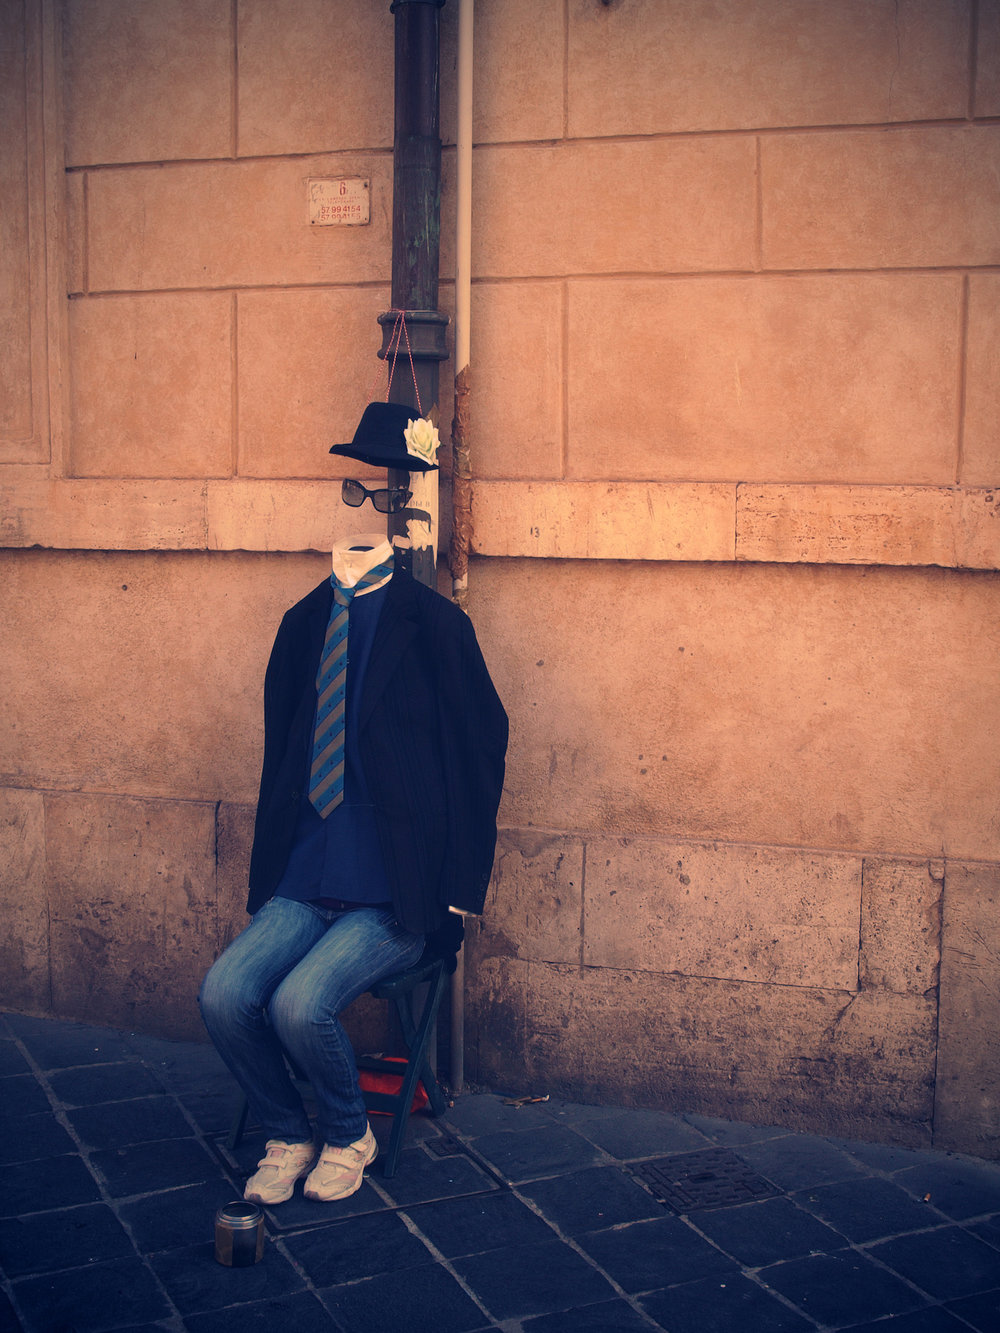 The Invisible Man  / Part of 'Trip To Italy' series by Geena Matuson @geenamatuson, 2011.